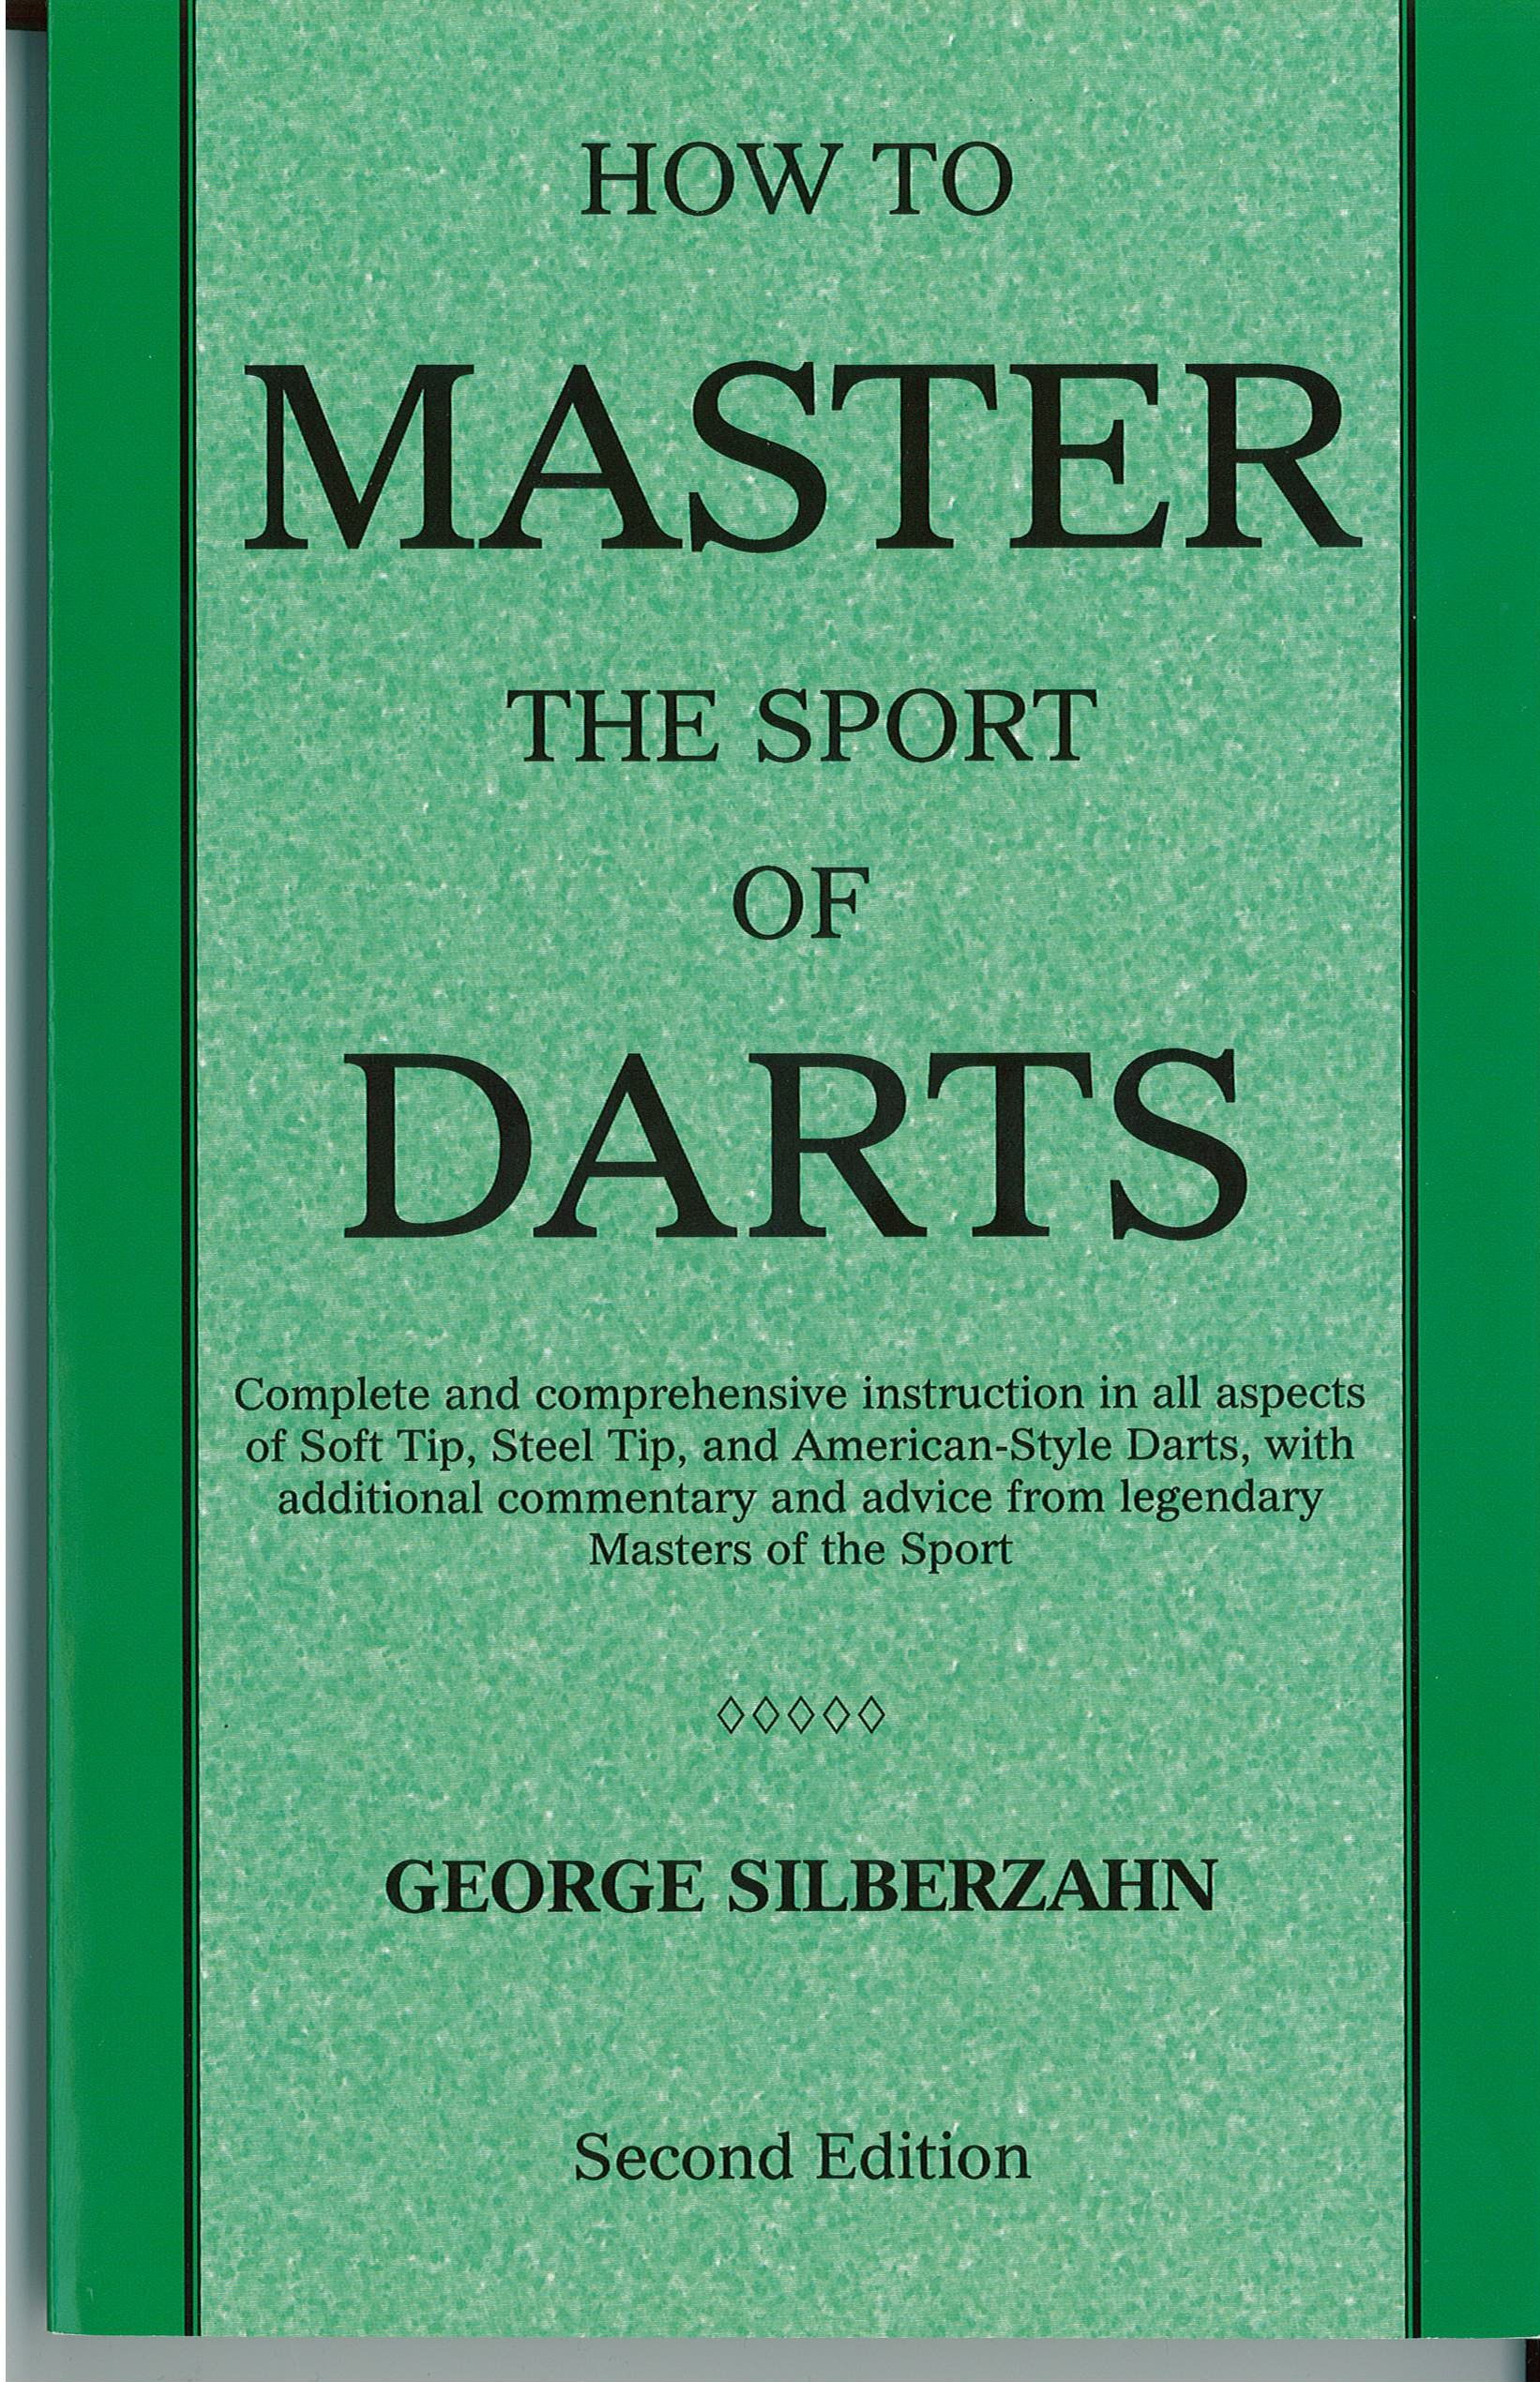 How to Master the Sport of Darts - Second Edition